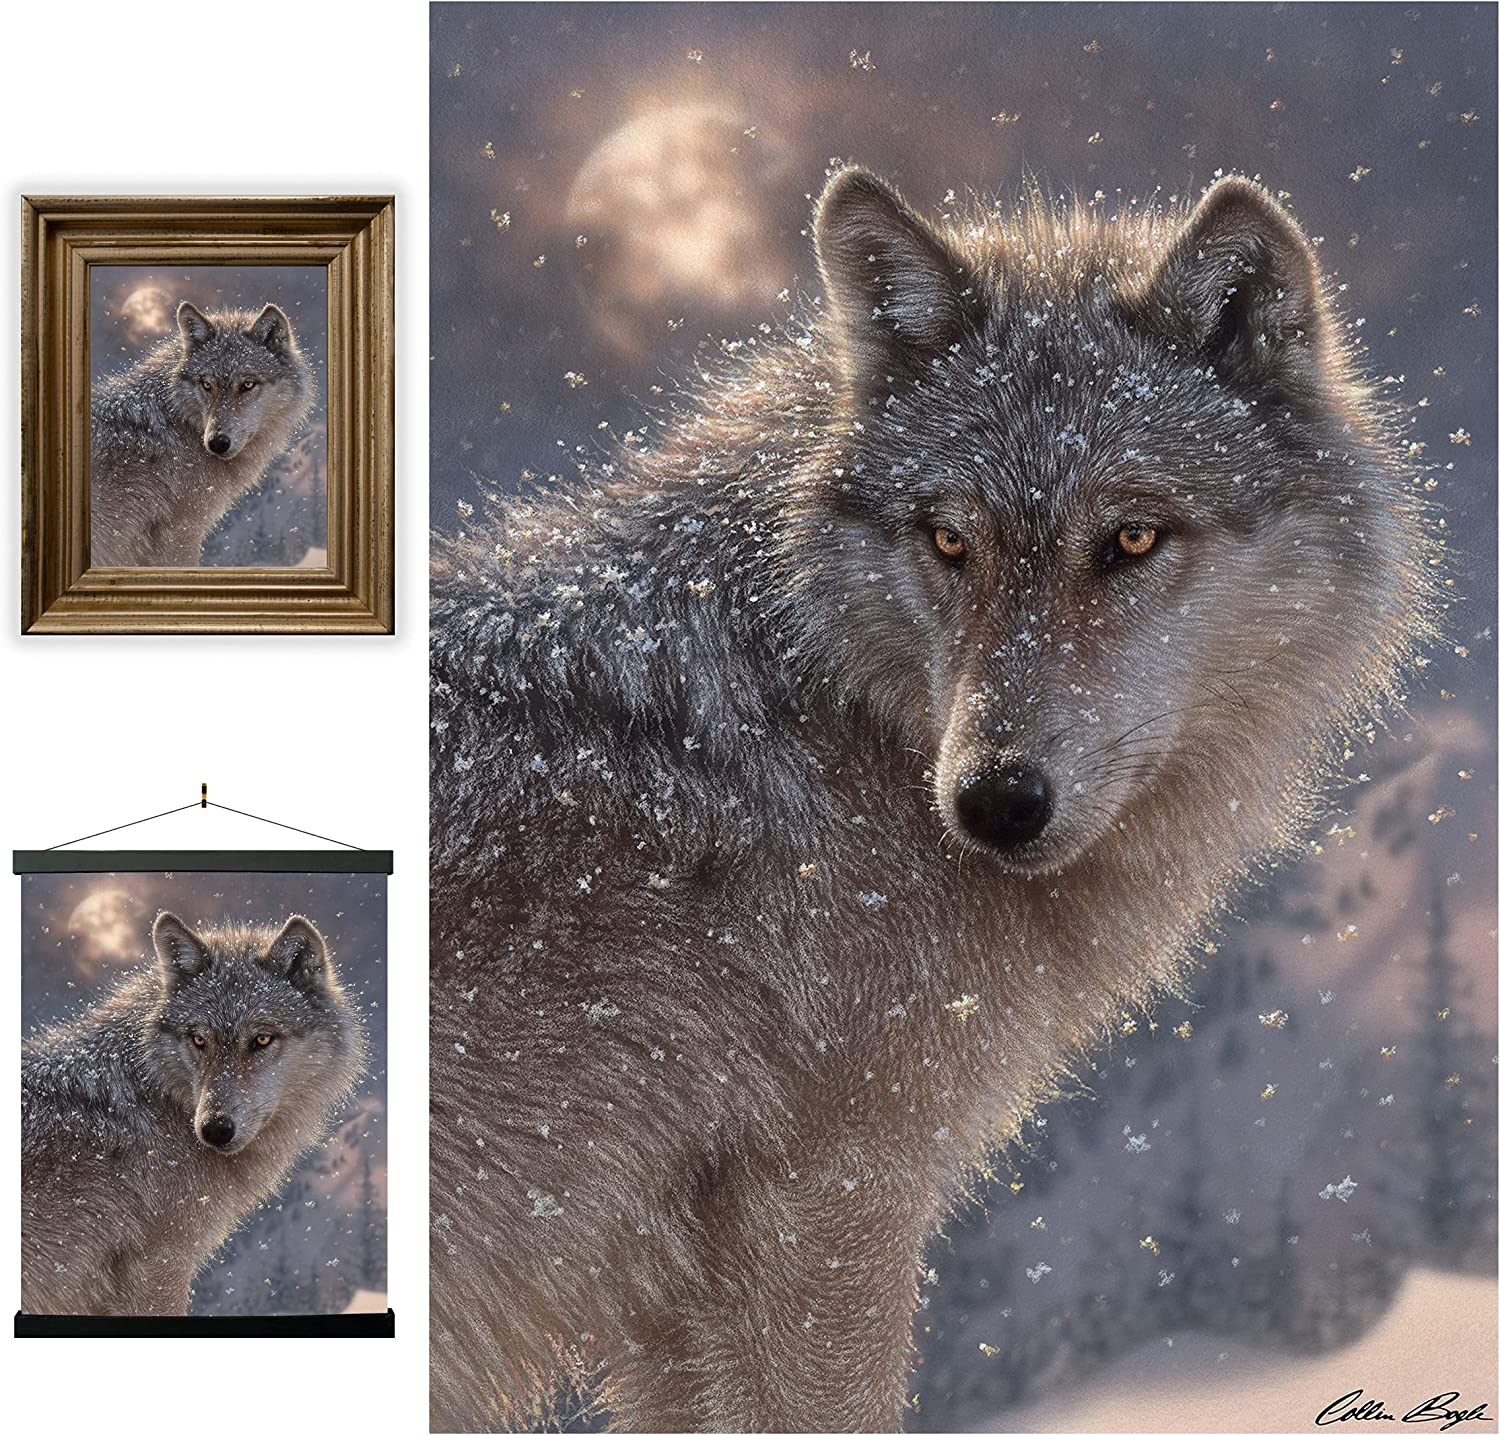 3D LiveLife Lenticular Wall Art Prints - Lone Wolf from Deluxebase. Unframed 3D Animal Poster. Perfect wall decor. Original artwork licensed from renowned artist, Collin Bogle